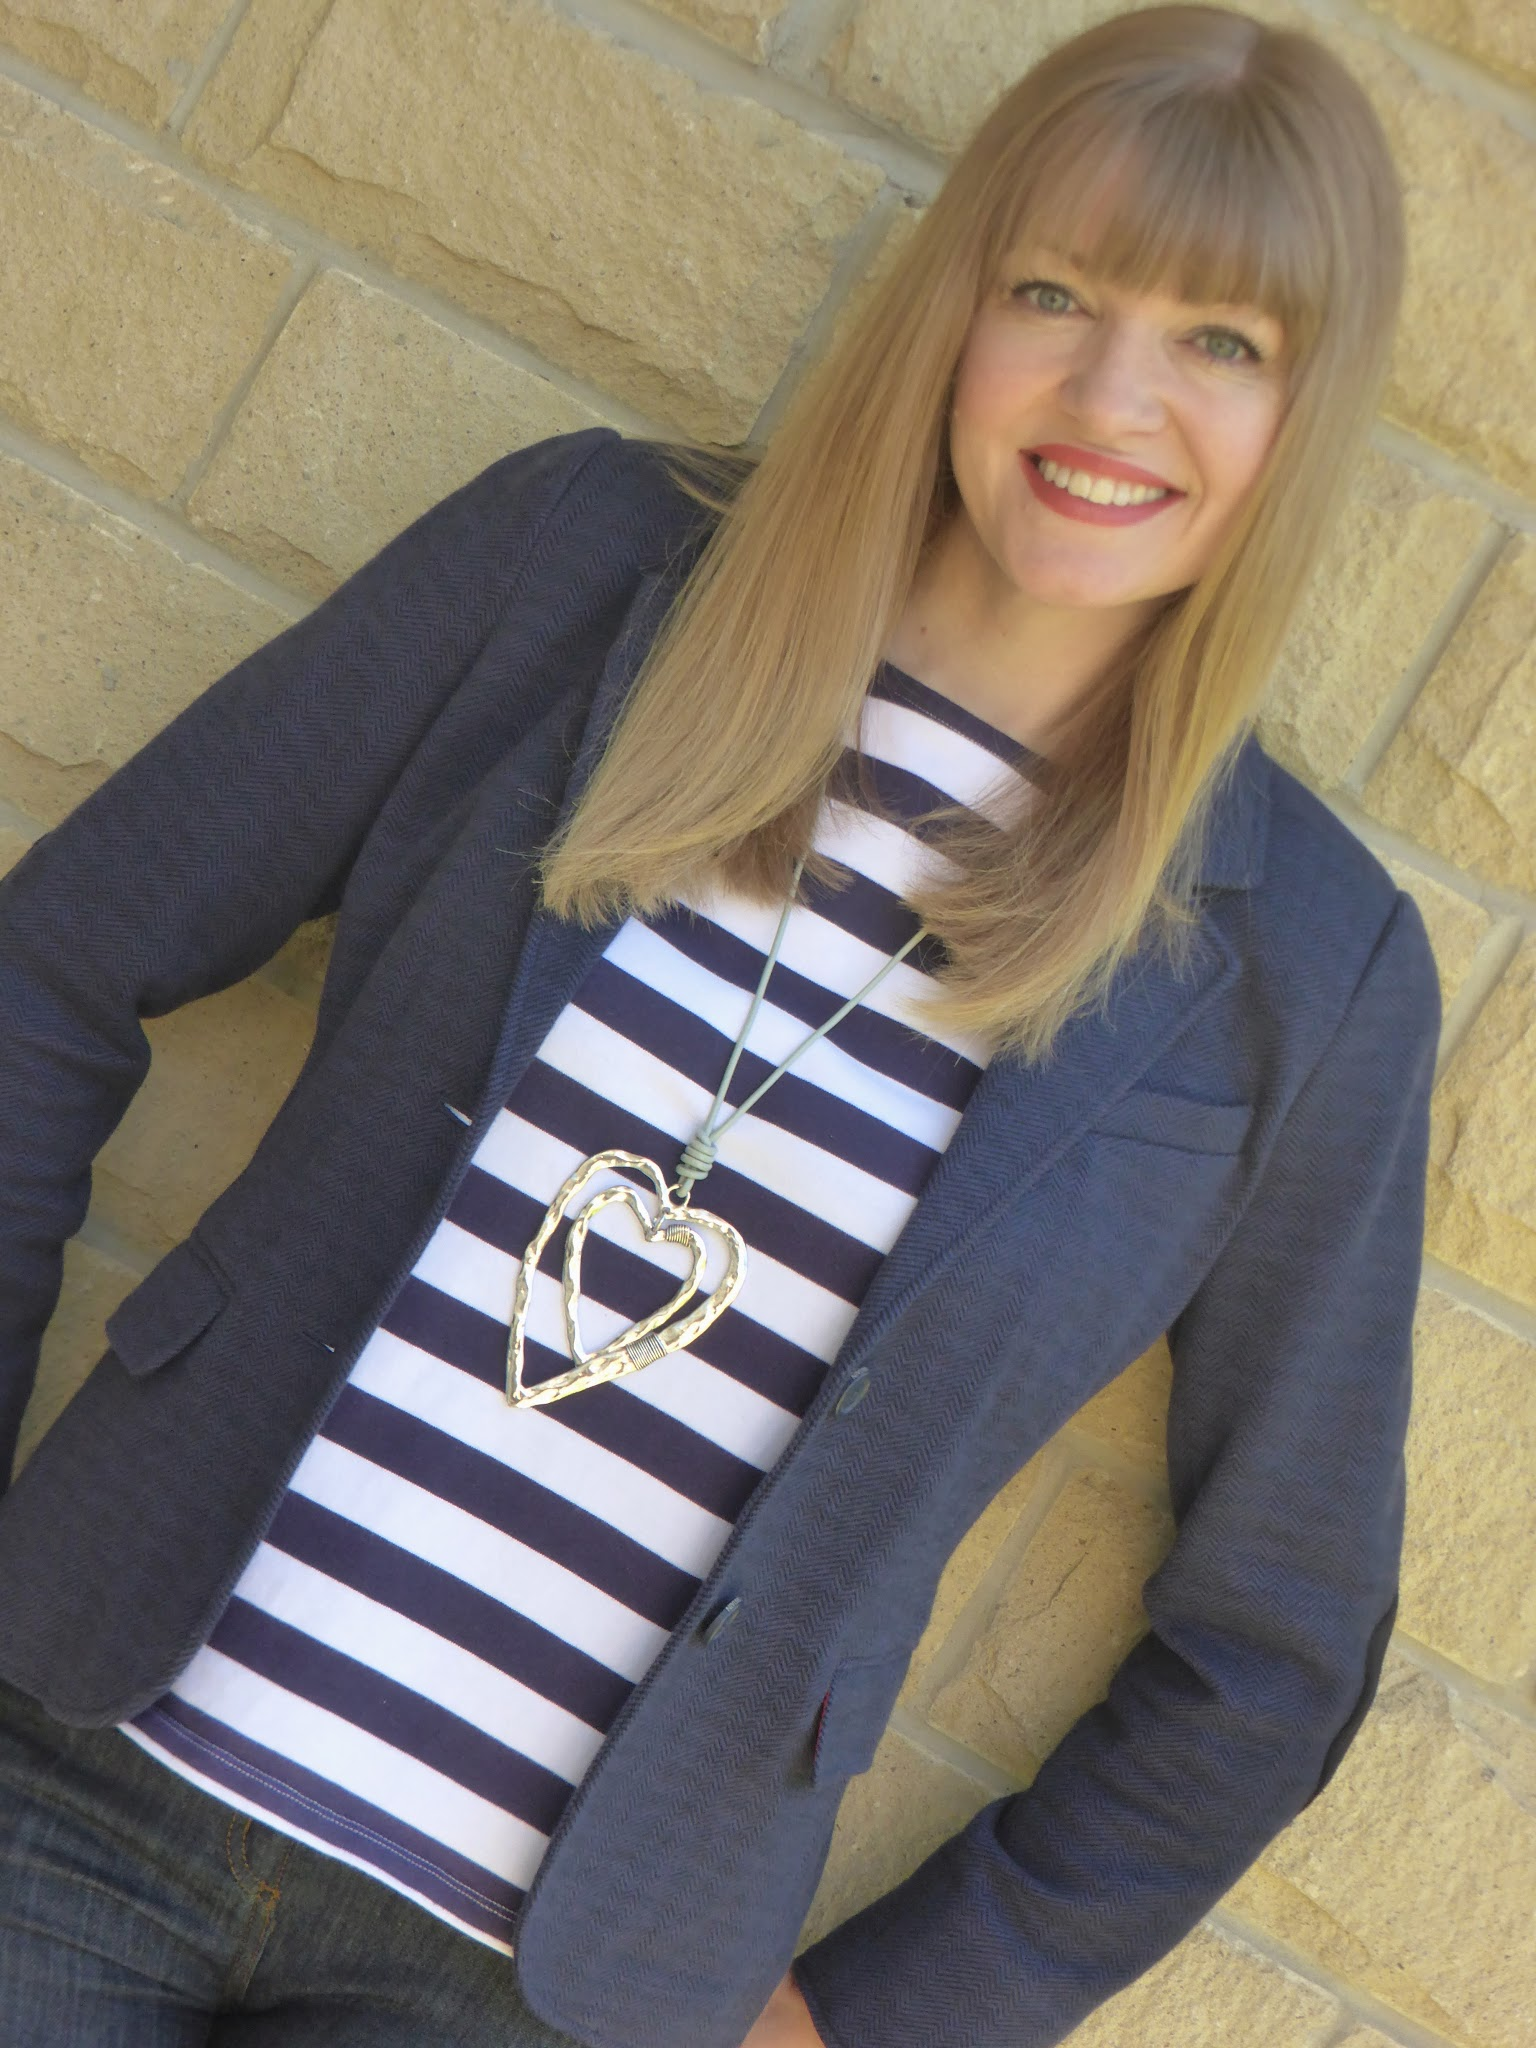 Over 40 blogger What Lizzy Loves wearing Jack Wills Aldburgh breton, Joules navy jersey tweed blazer and large silver heart pendant